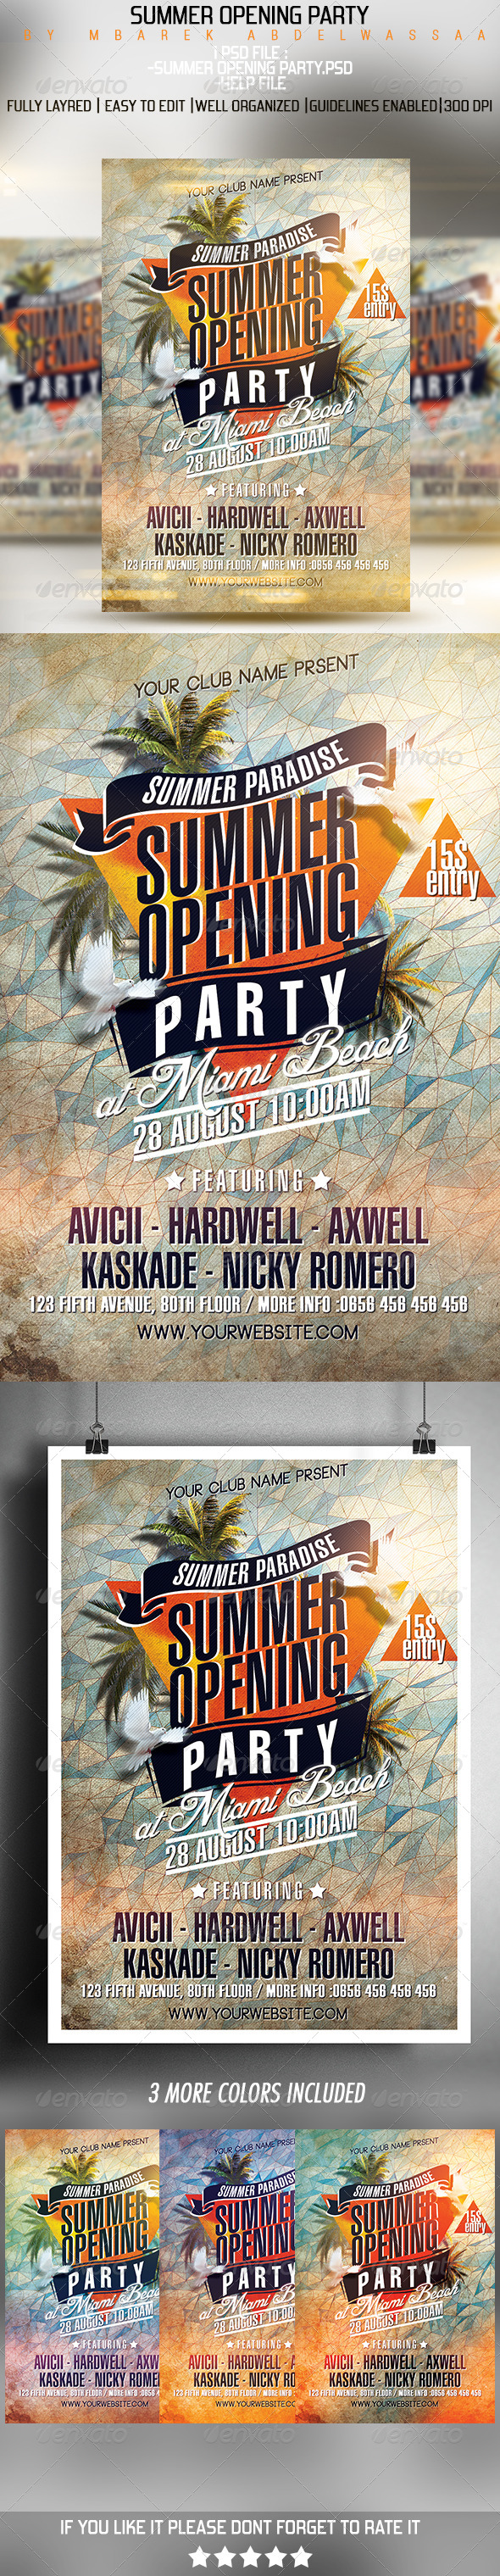 GraphicRiver Summer Opening Party Flyer 7440268